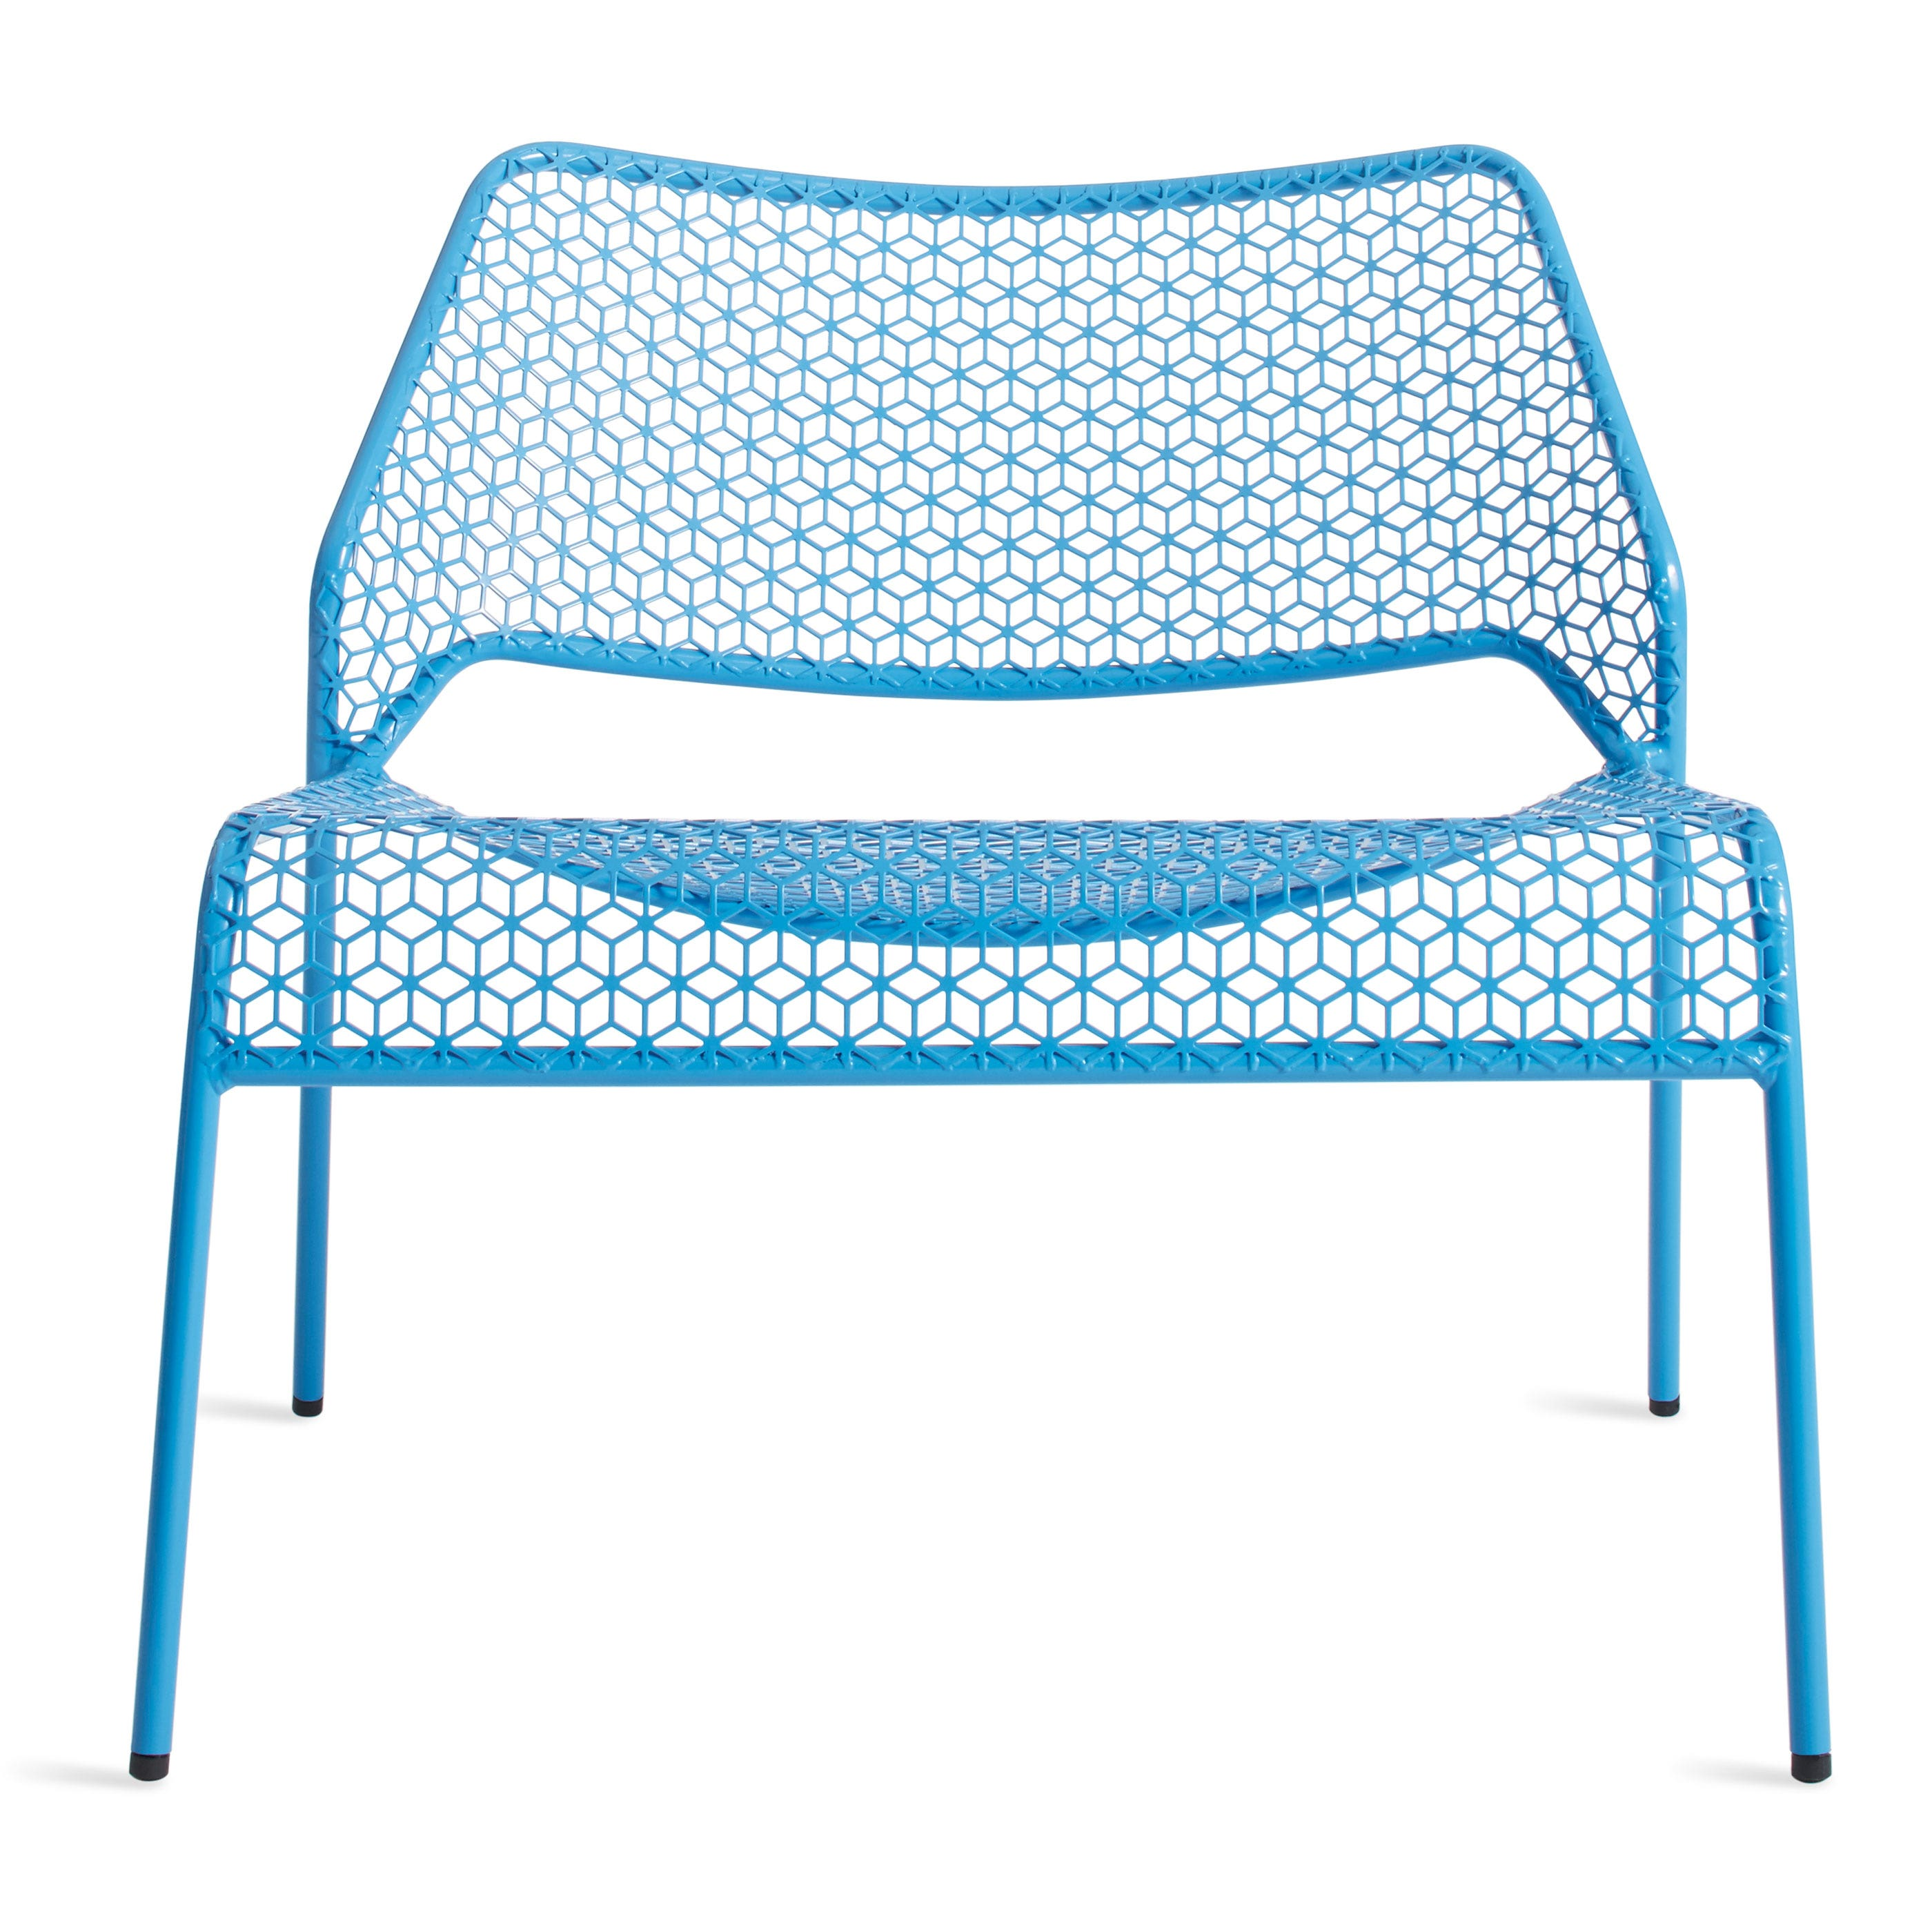 hot mesh lounge chair  modern outdoor seating  blu dot - previous image hot mesh lounge chair  simple blue